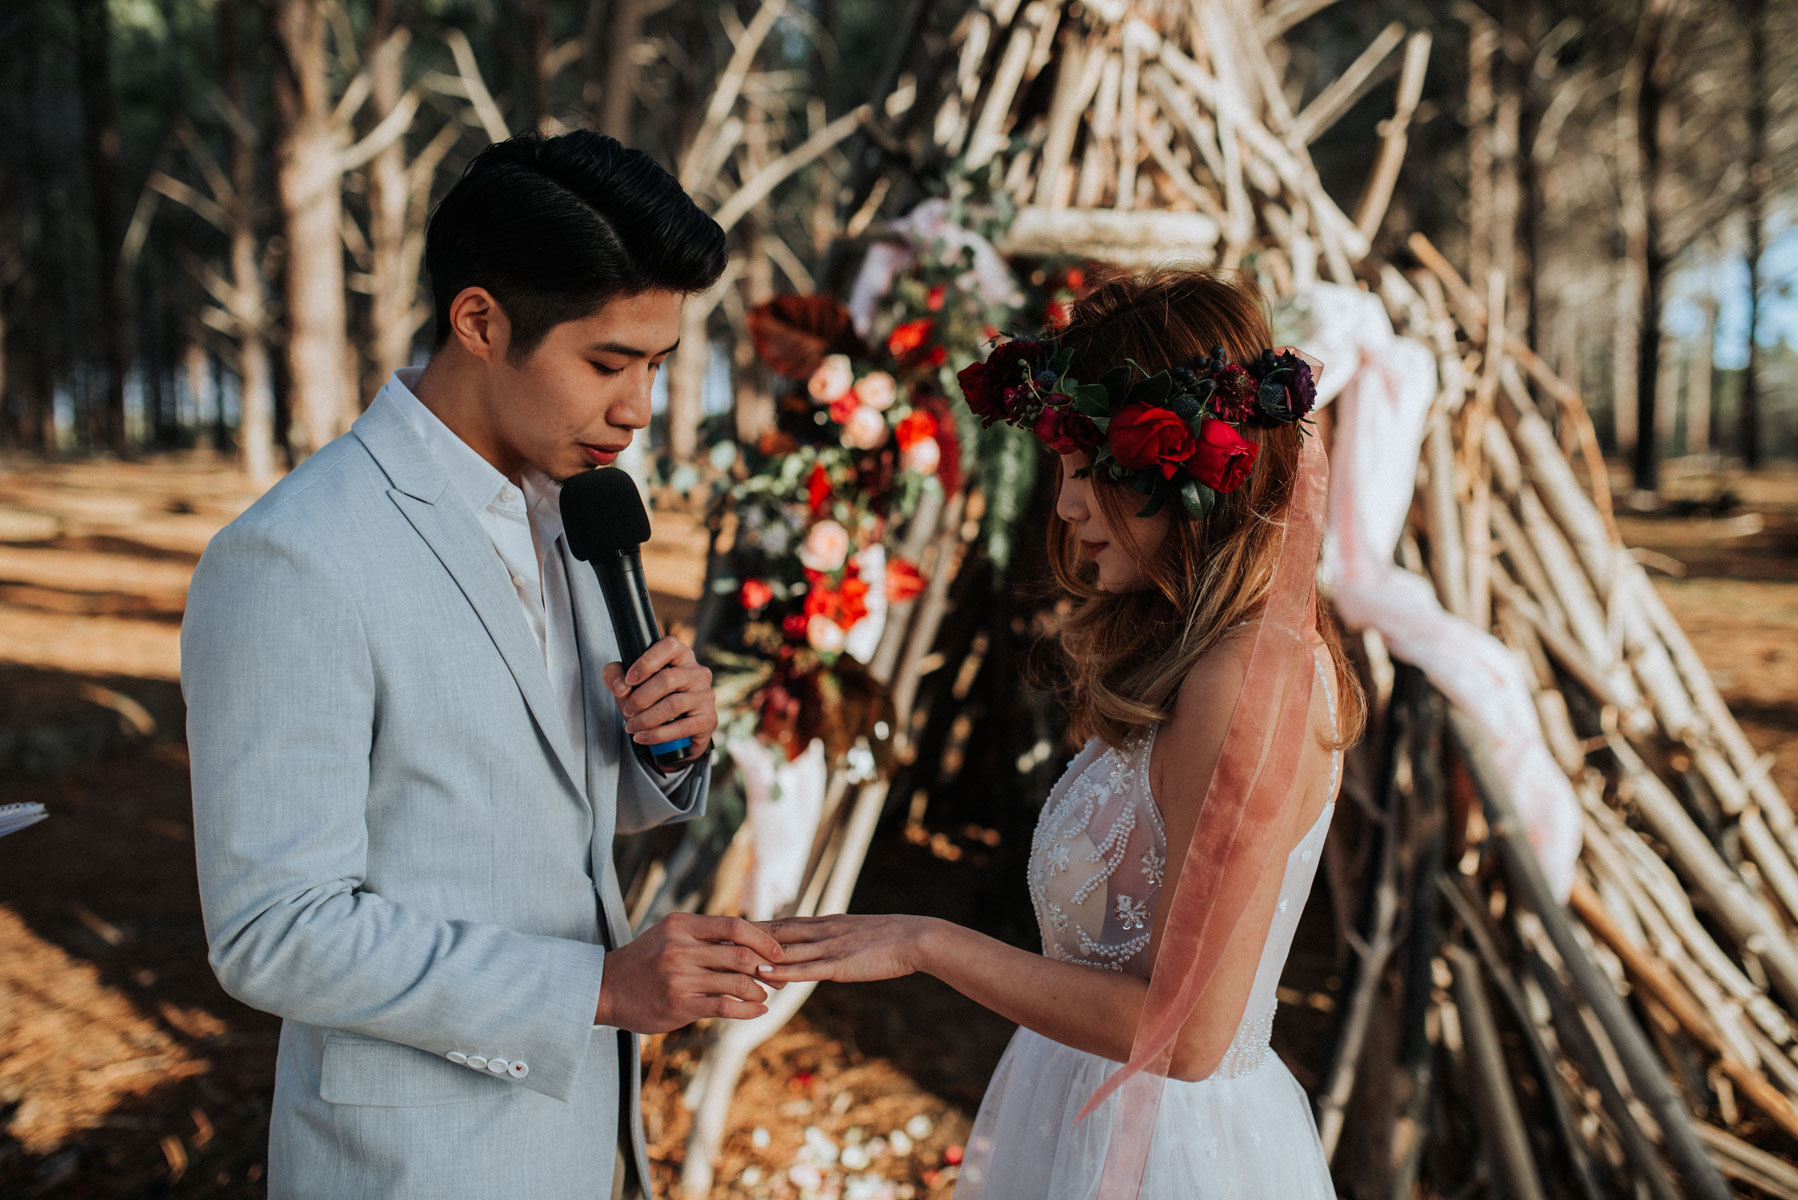 james-julene-forest-elopement-perth-19.JPG